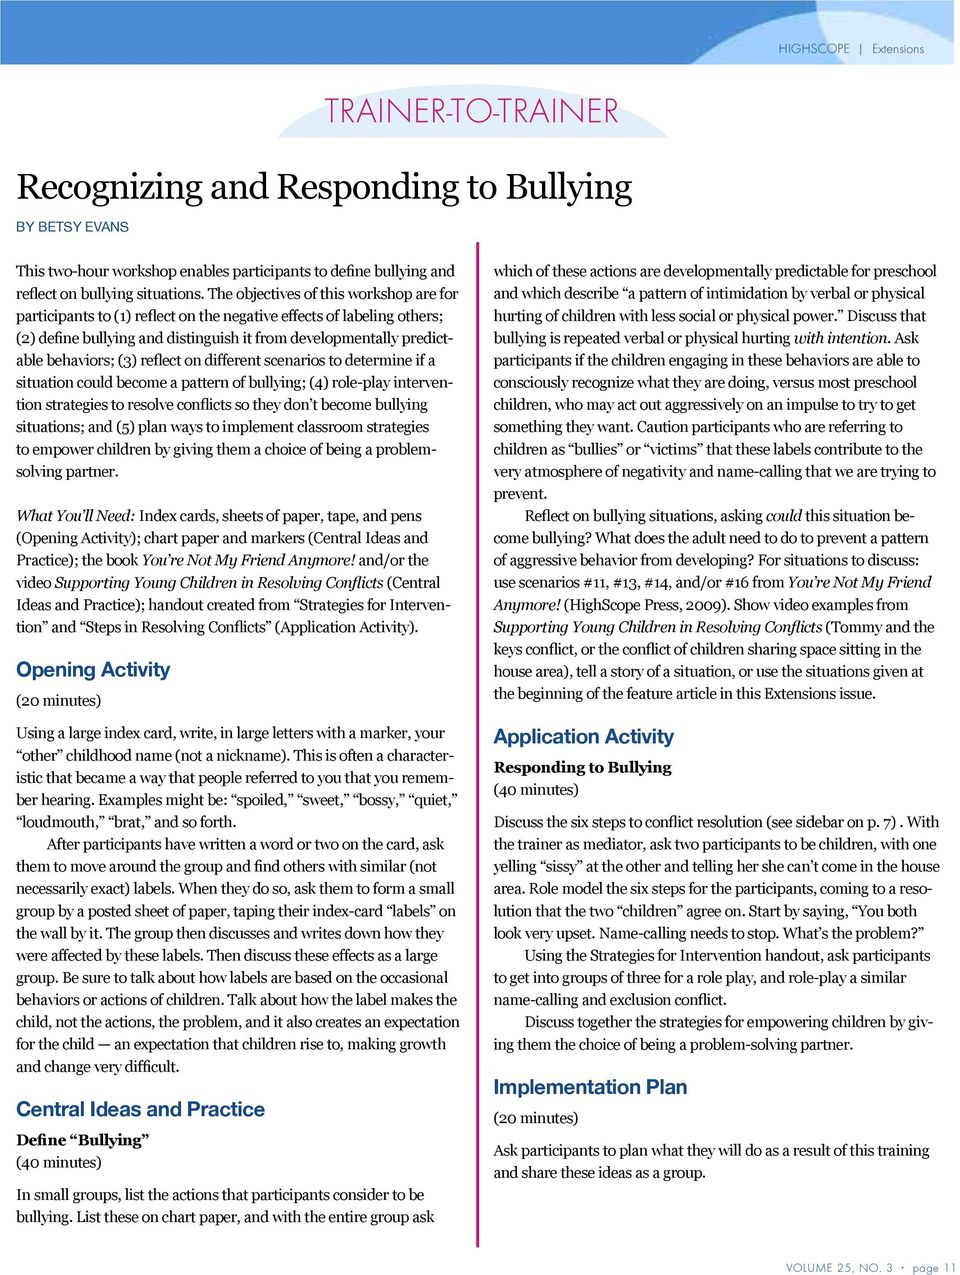 reflect on different scenarios to determine if a situation could become a pattern of bullying; (4) role-play intervention strategies to resolve conflicts so they don t become bullying situations; and